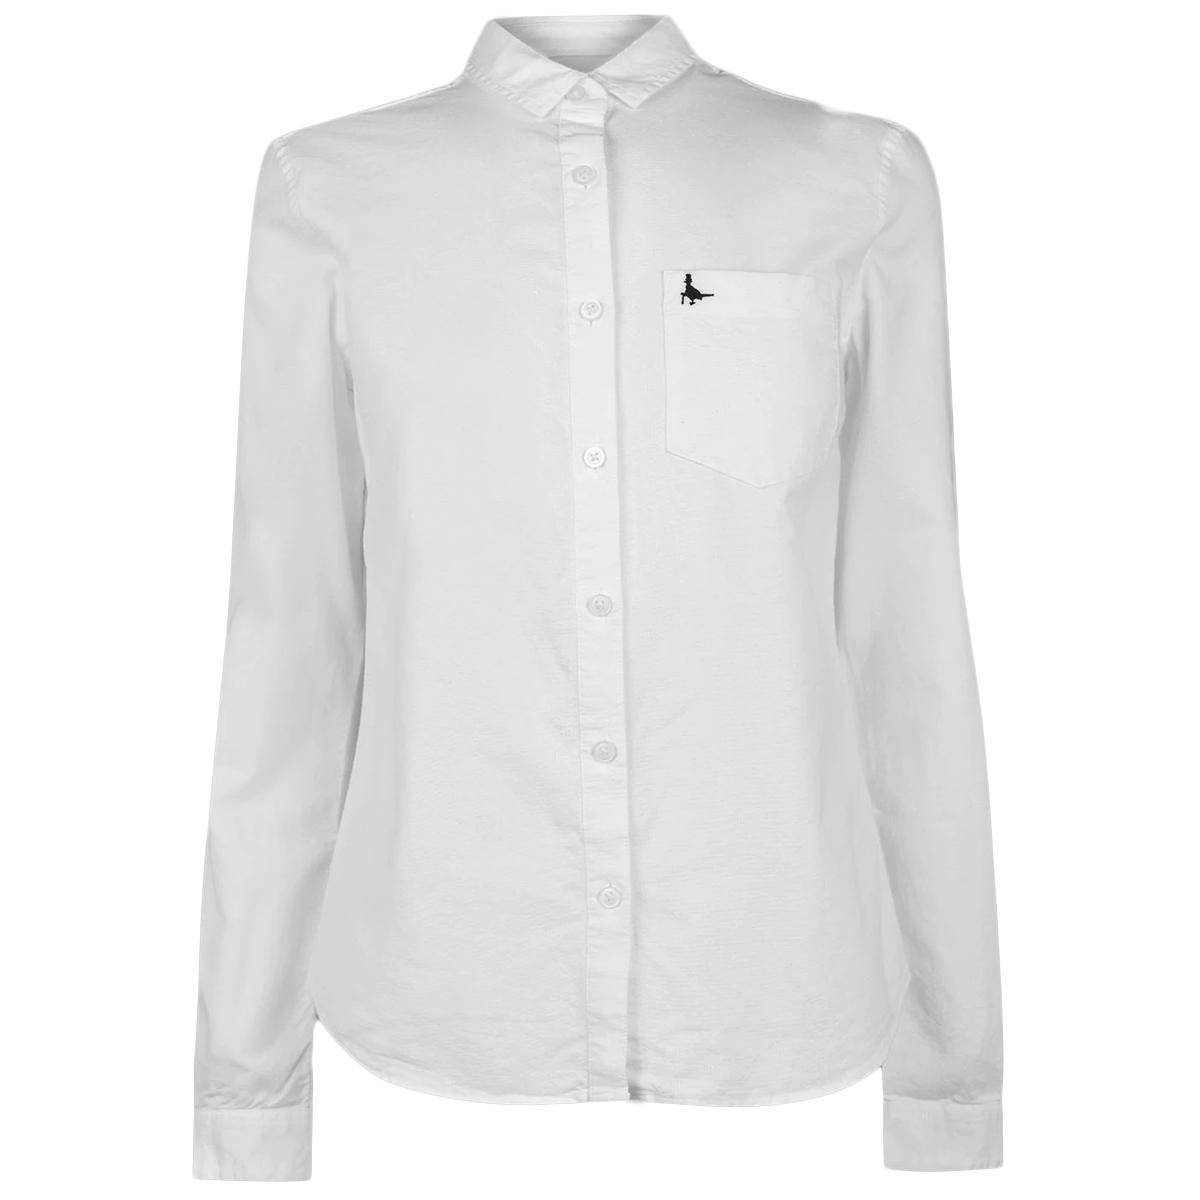 Jack Wills Women's Homefore Classic Shirt - White, 10